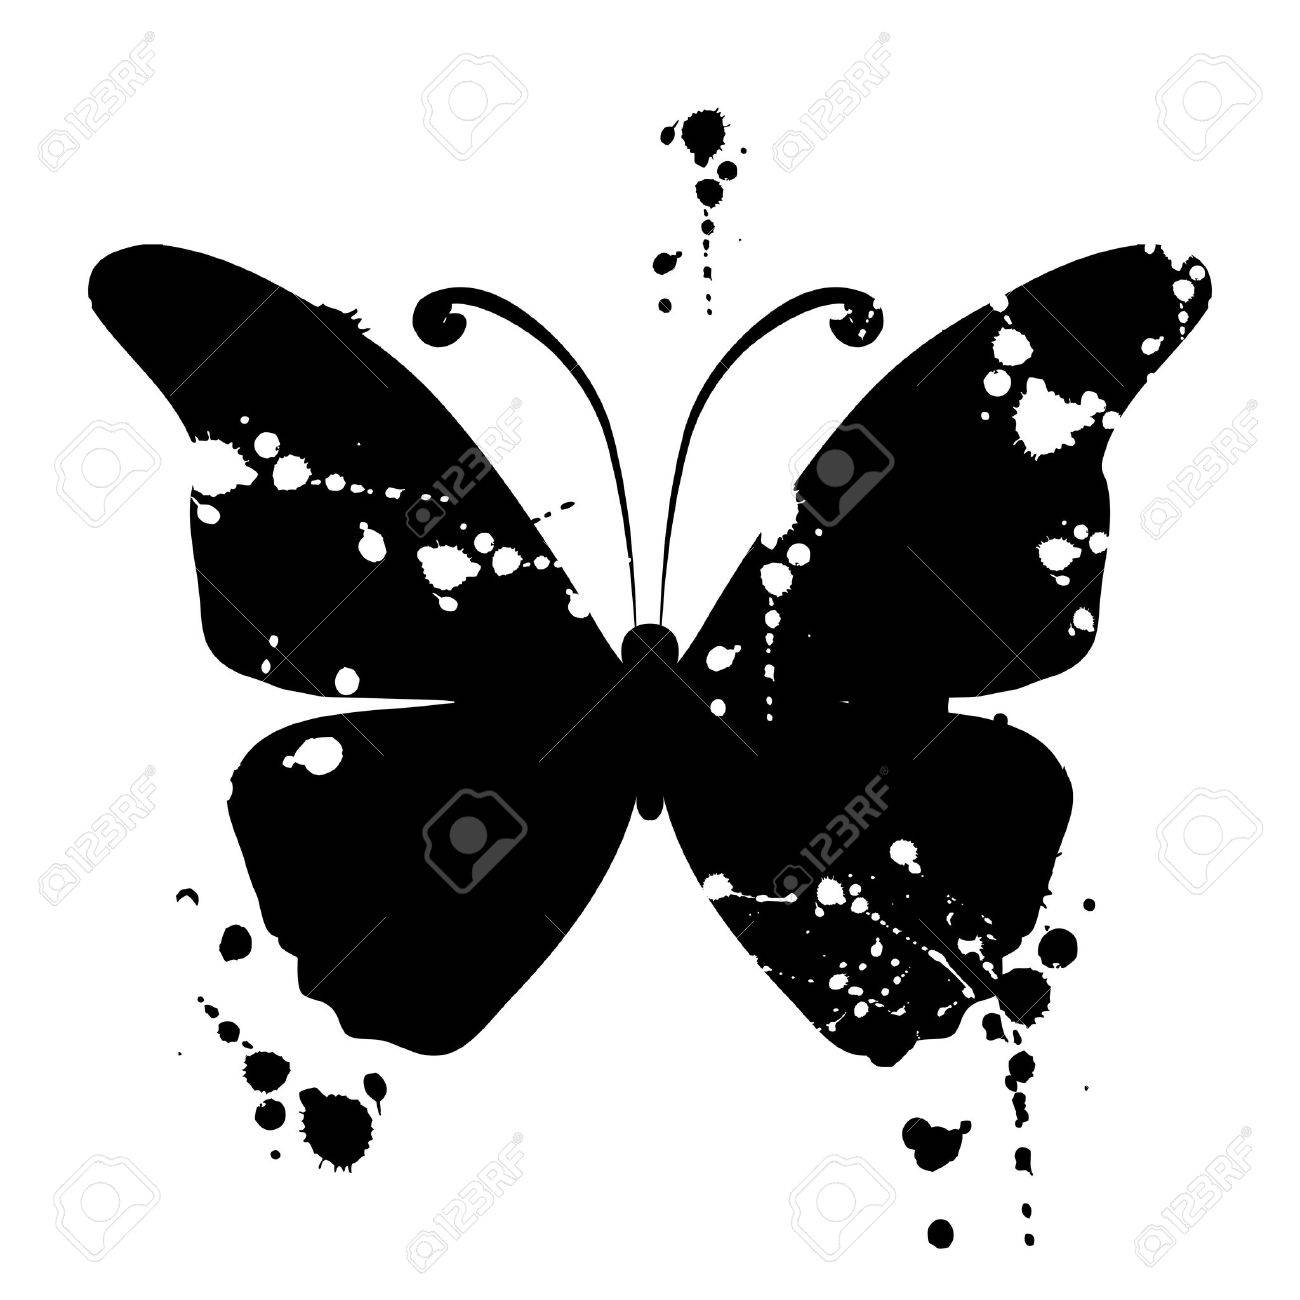 butterfly silhouette for you design royalty free cliparts vectors